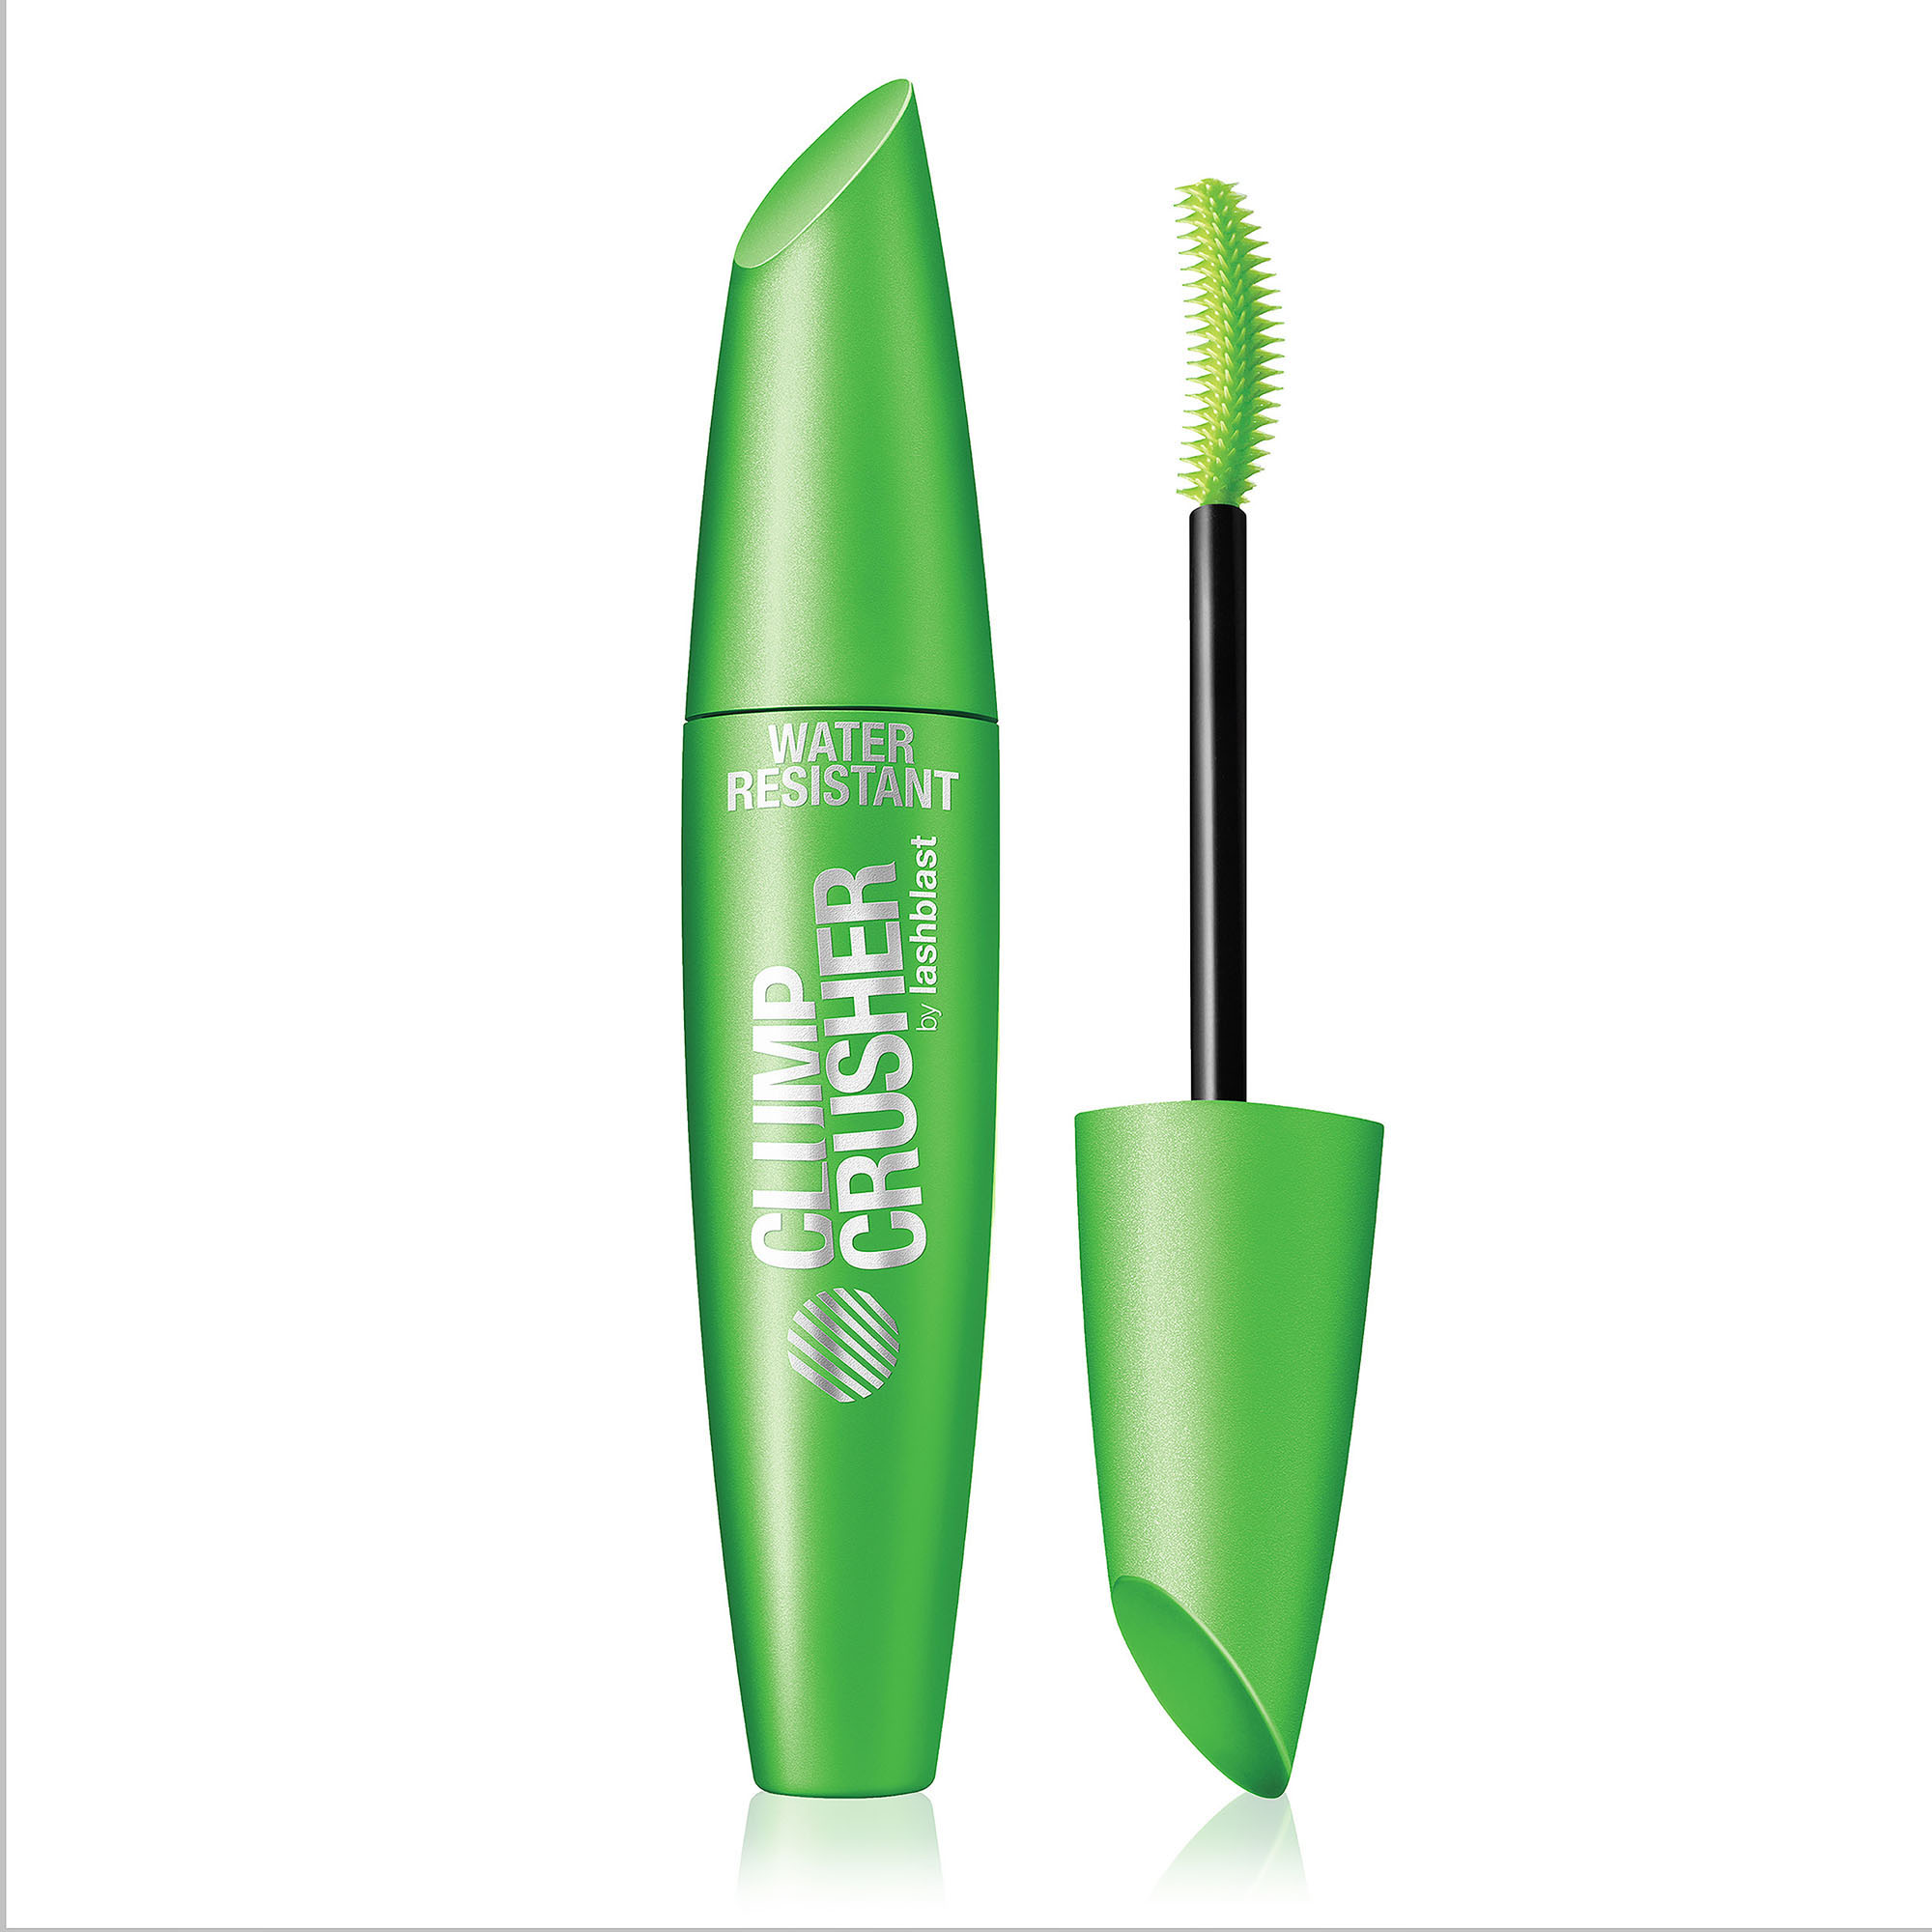 COVERGIRL Clump Crusher by LashBlast Water Resistant Mascara, Black, .44 fl oz